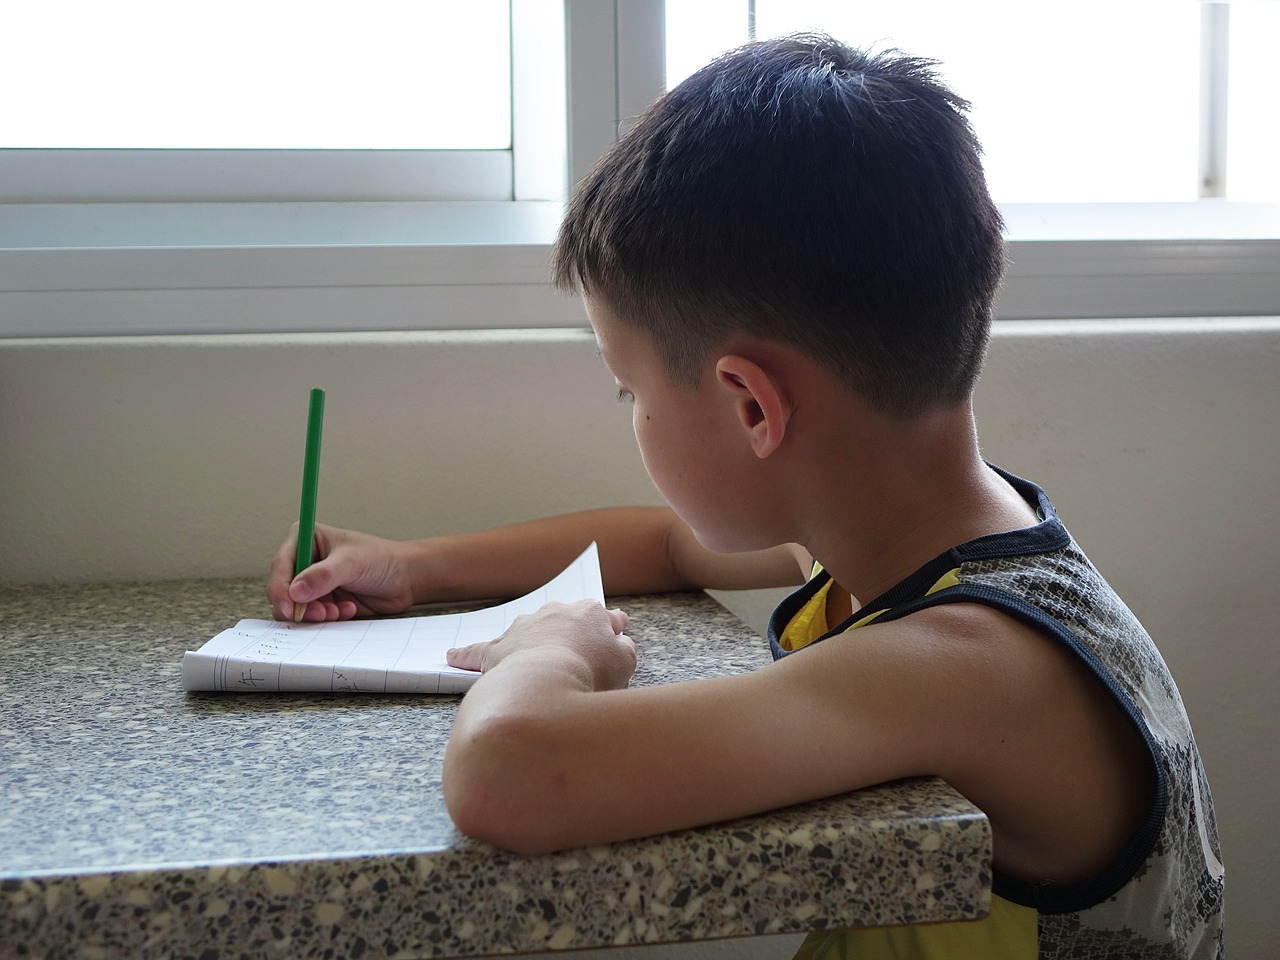 Boy with pencil and workbook at table